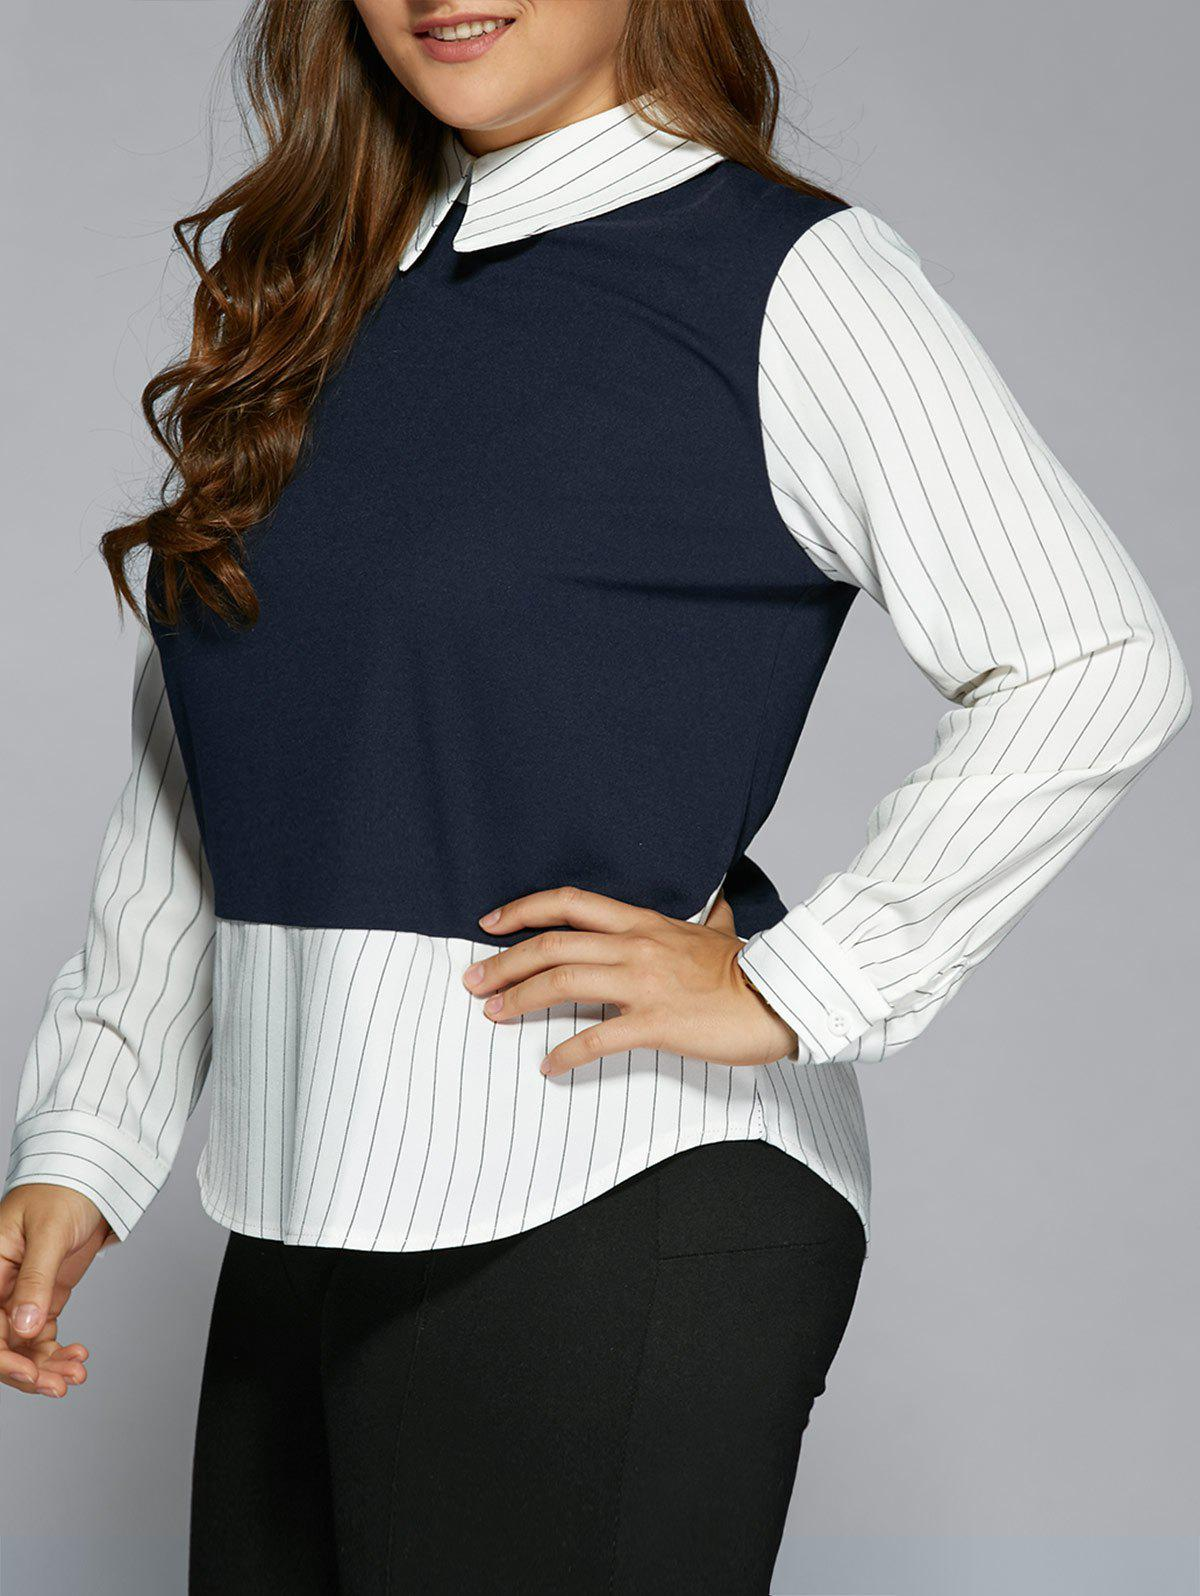 Plus Size Stripe Color Block Faux Twinset ShirtWOMEN<br><br>Size: 3XL; Color: PURPLISH BLUE; Material: Polyester; Shirt Length: Regular; Sleeve Length: Full; Collar: Flat Collar; Style: Fashion; Season: Fall,Spring,Winter; Embellishment: Zippers; Pattern Type: Striped; Weight: 0.410kg; Package Contents: 1 x  Shirt;